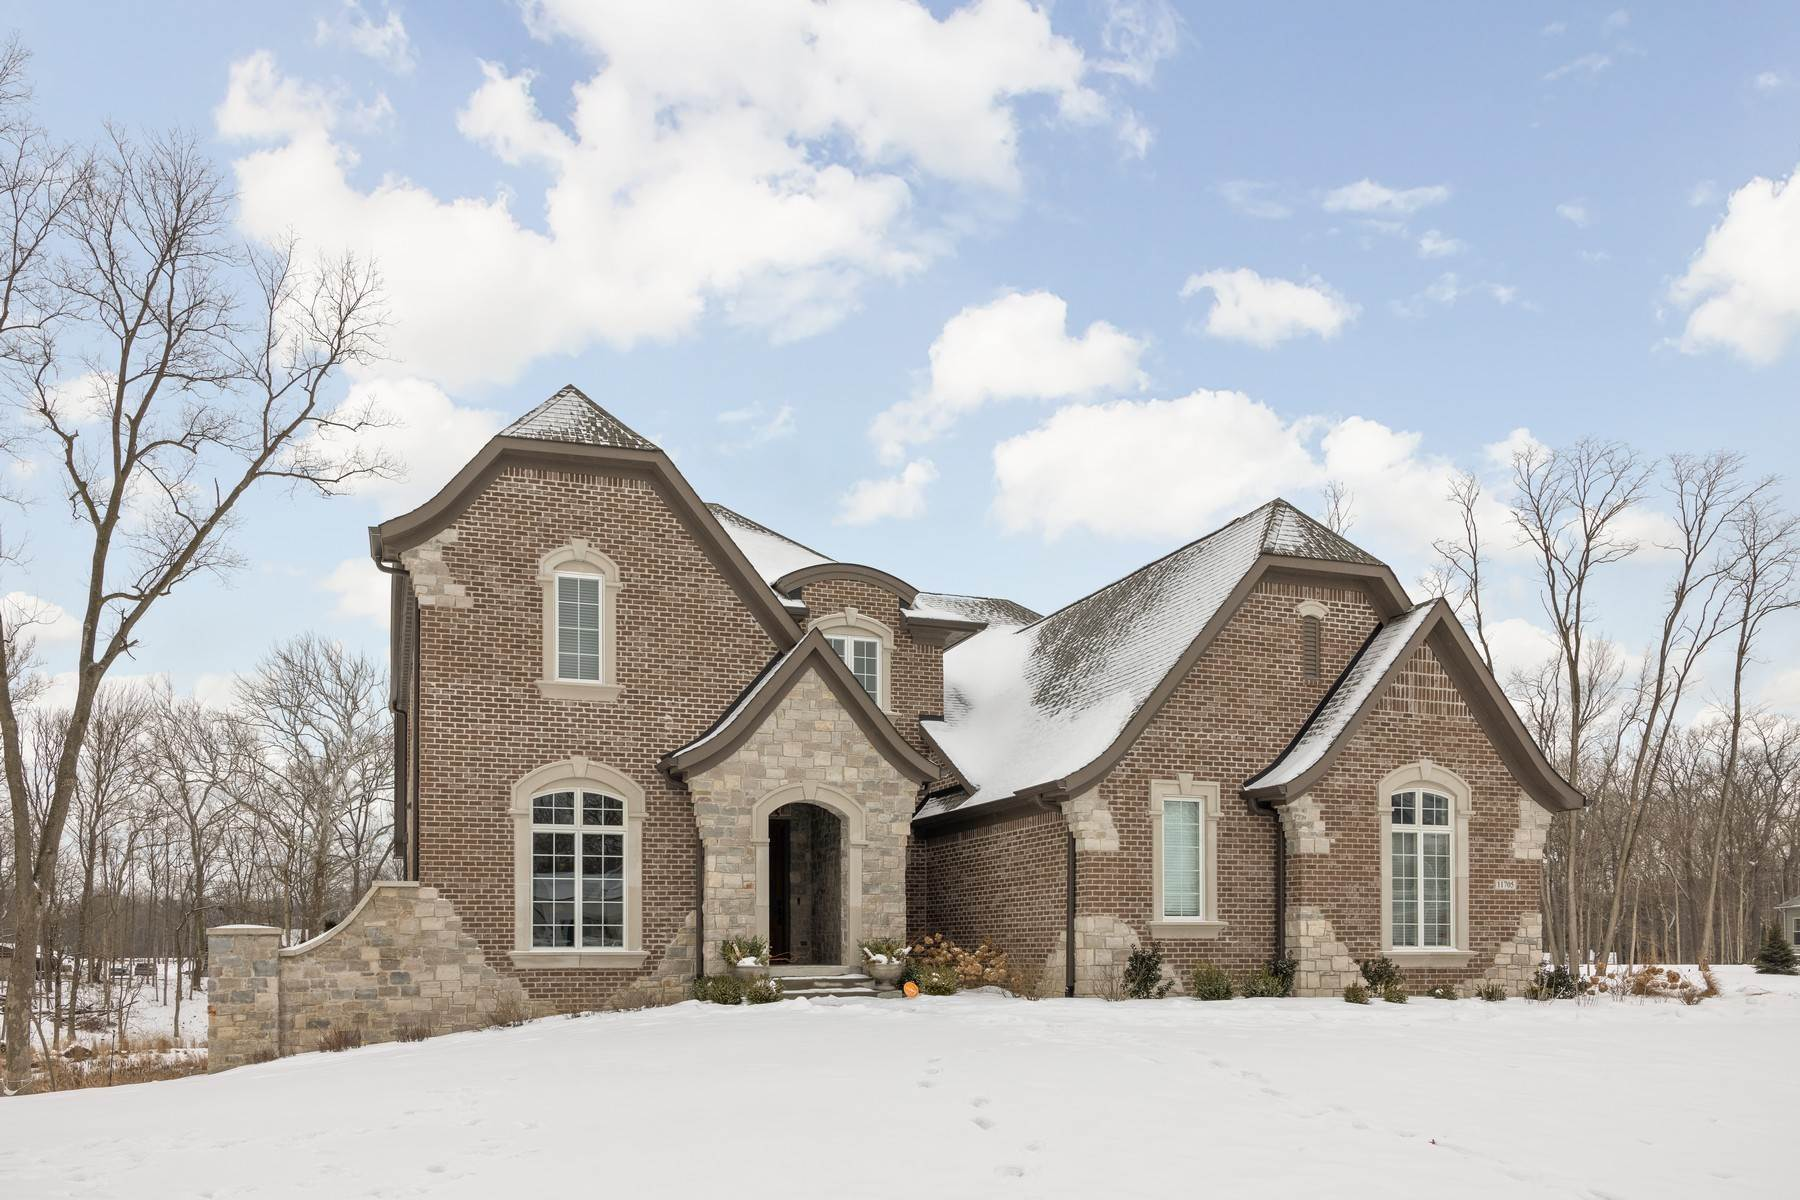 Single Family Homes for Sale at Stunning Home on Wooded Lot 11705 Walton Cres Zionsville, Indiana 46077 United States